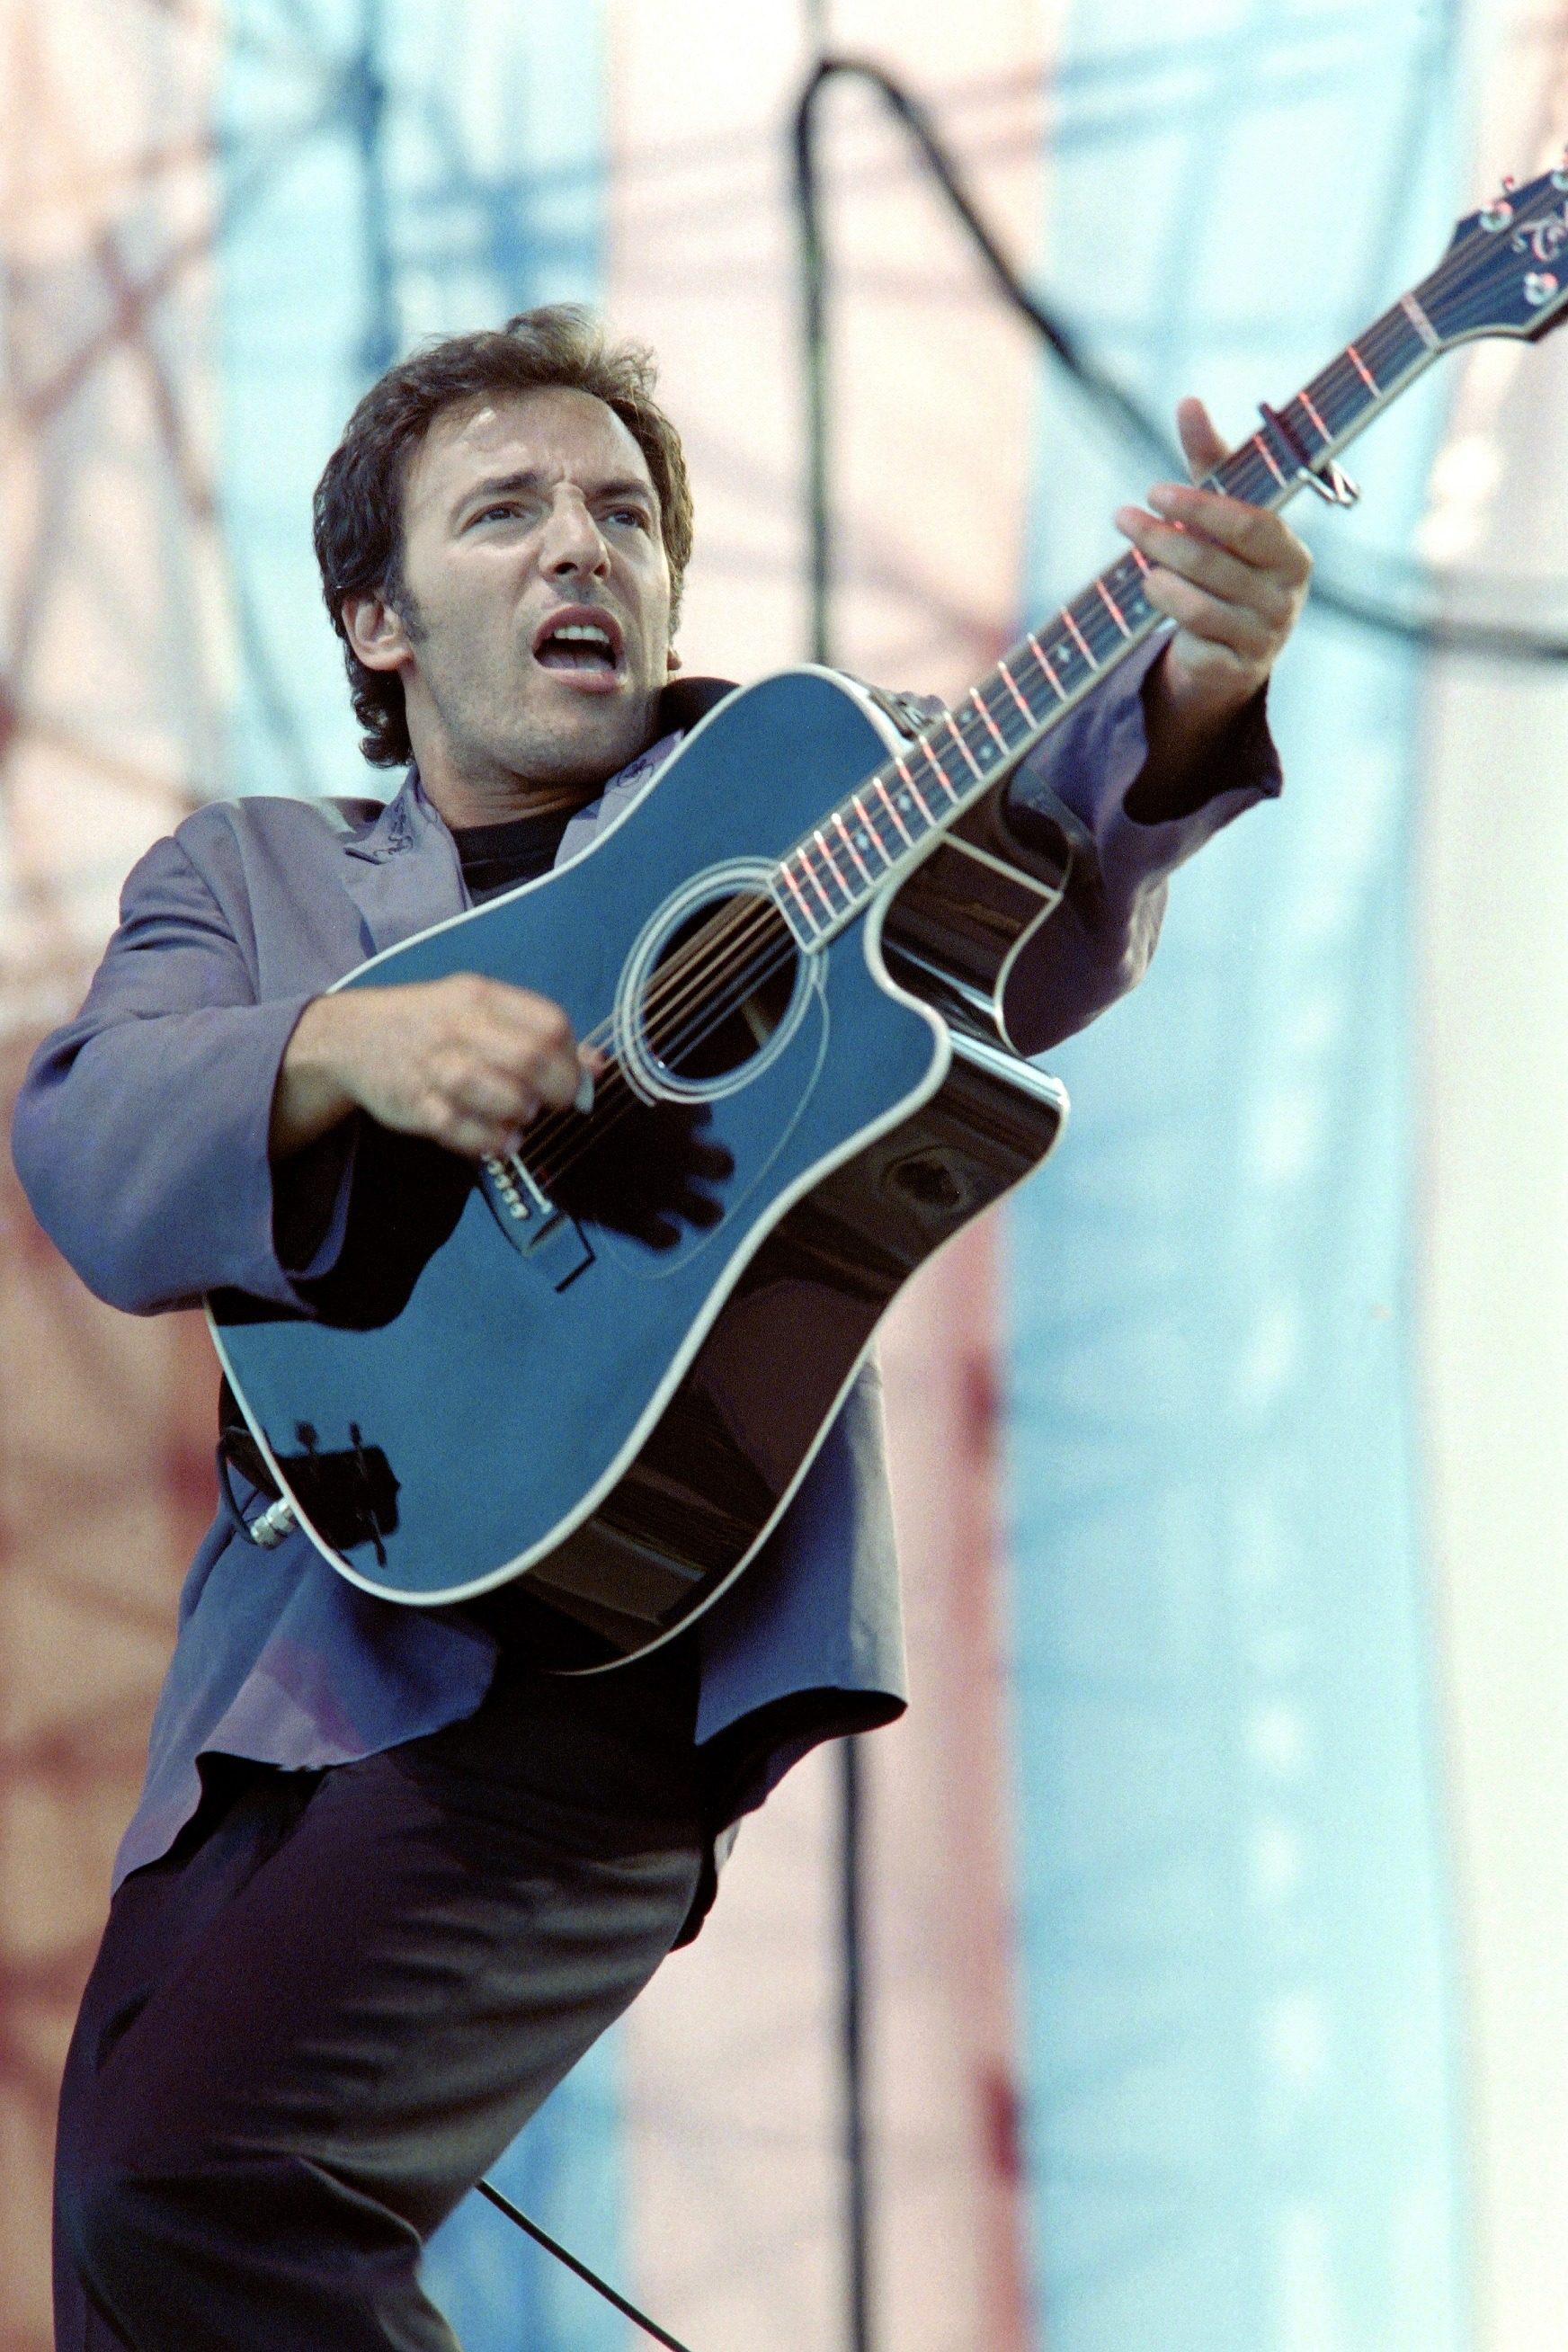 bruce springsteen 30 photos from his life and music career. Black Bedroom Furniture Sets. Home Design Ideas